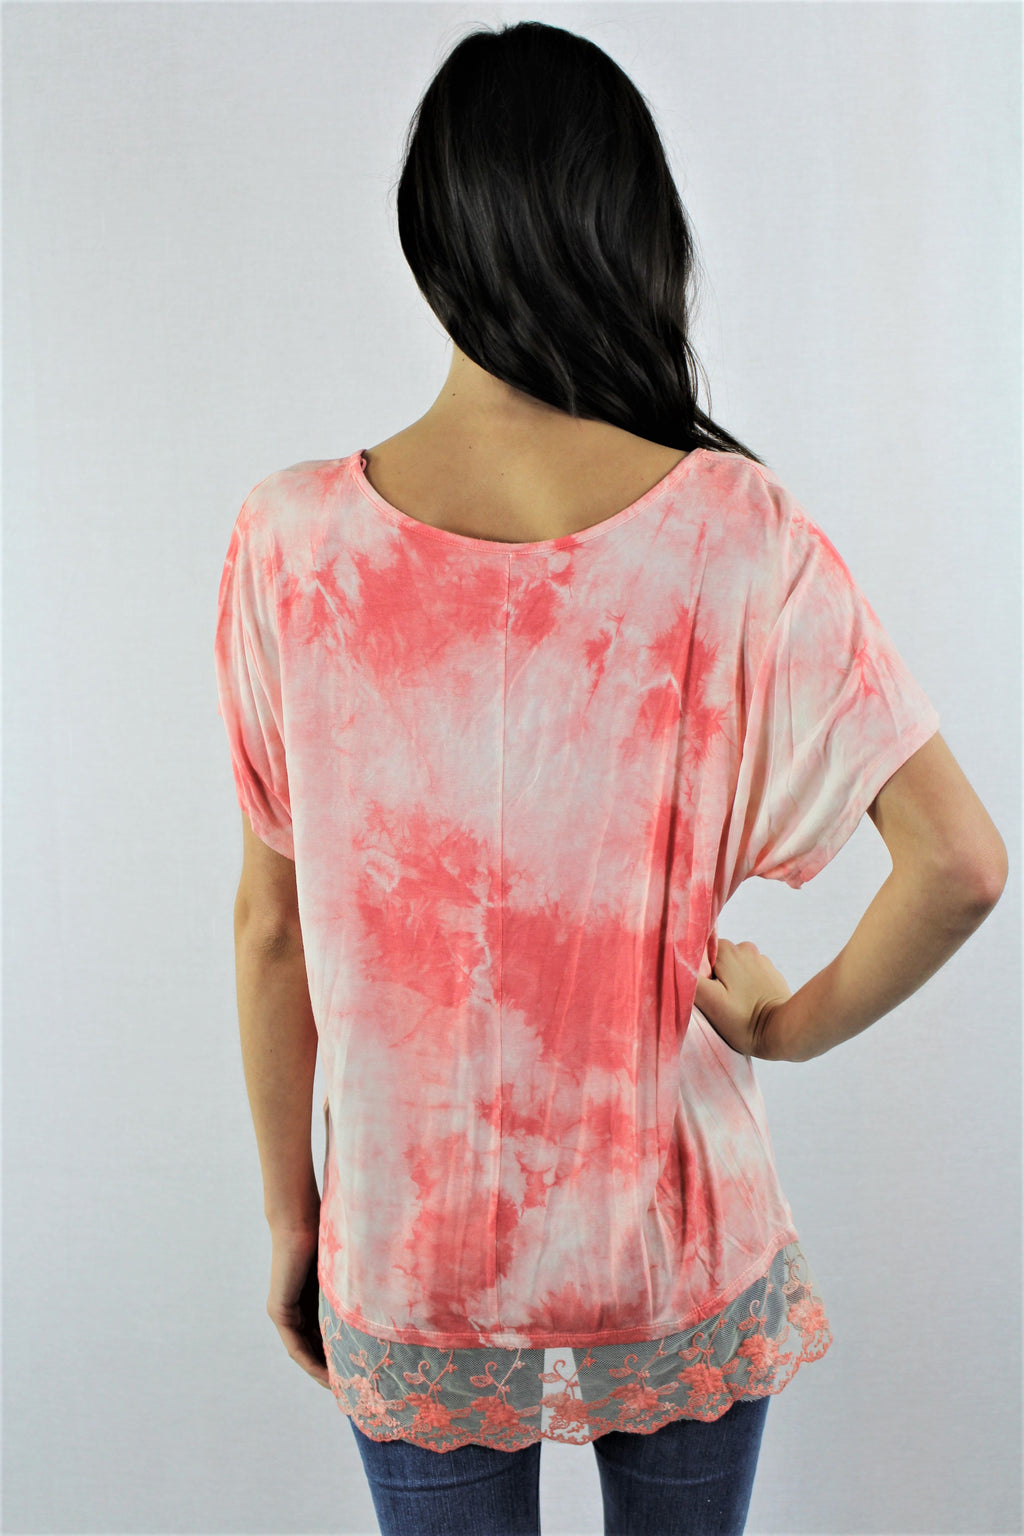 Lace Hem Detail Tie Dye Top